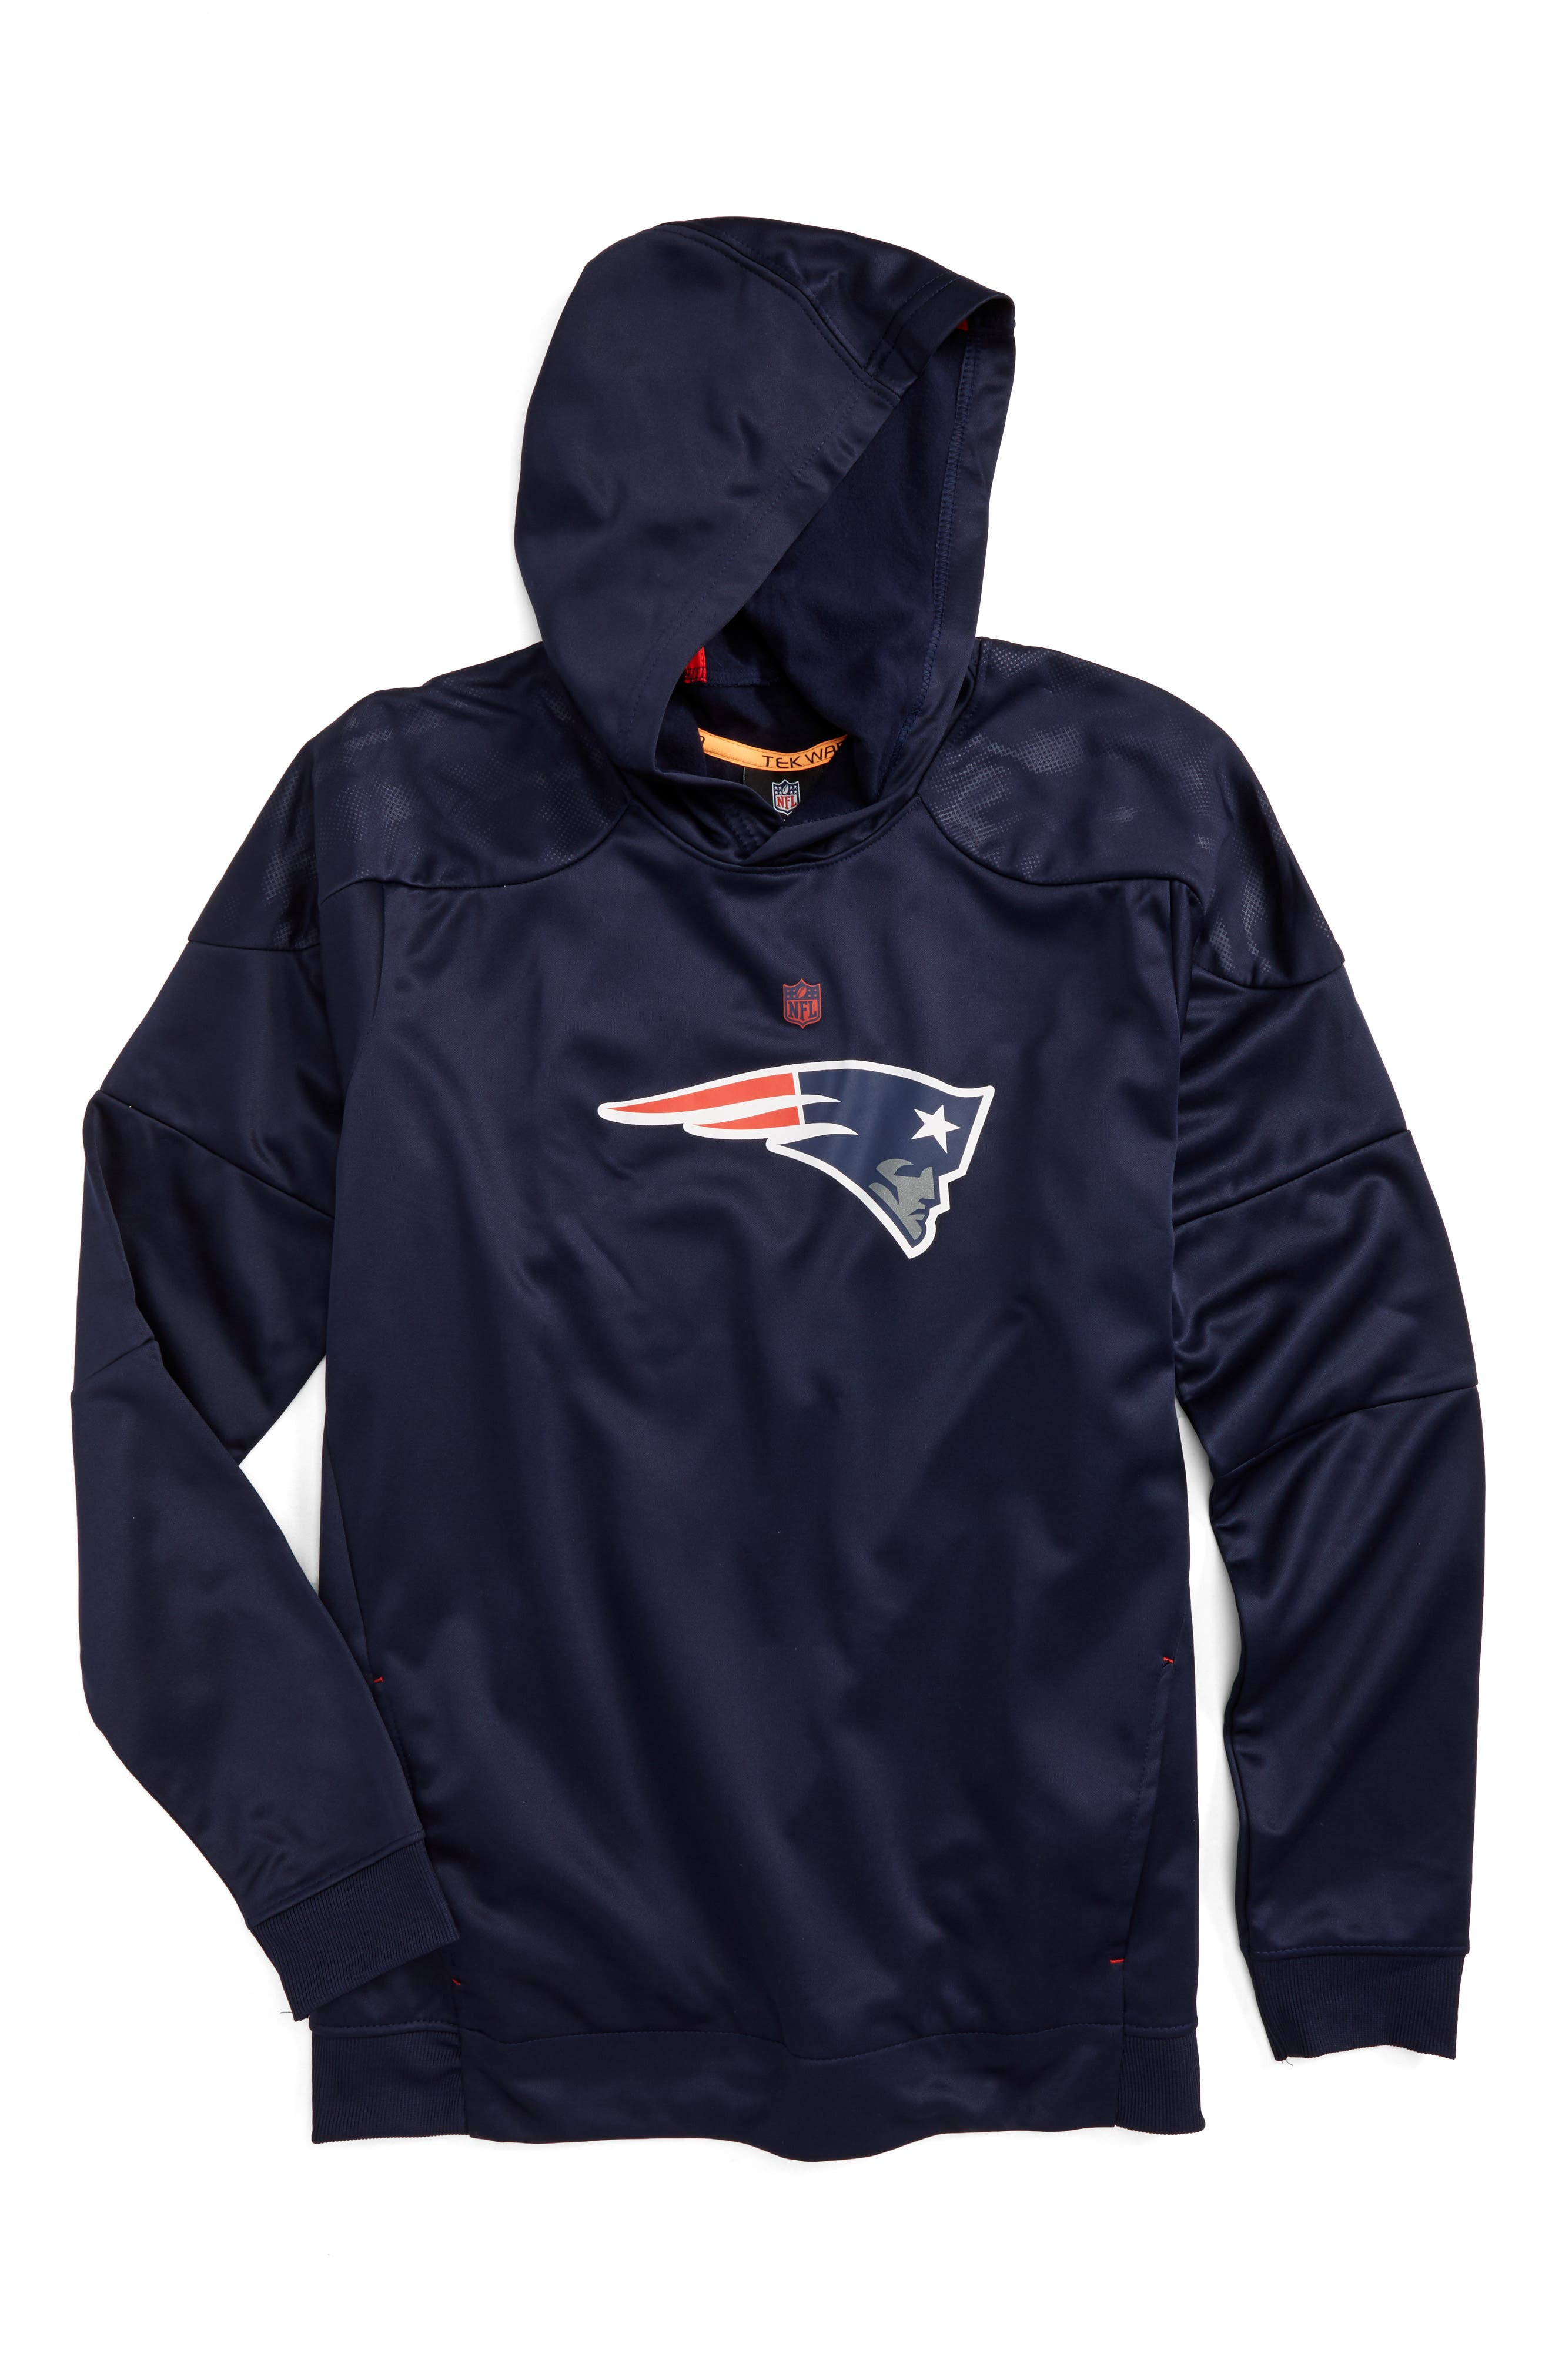 NFL New England Patriots Hoodie,                         Main,                         color, Navy